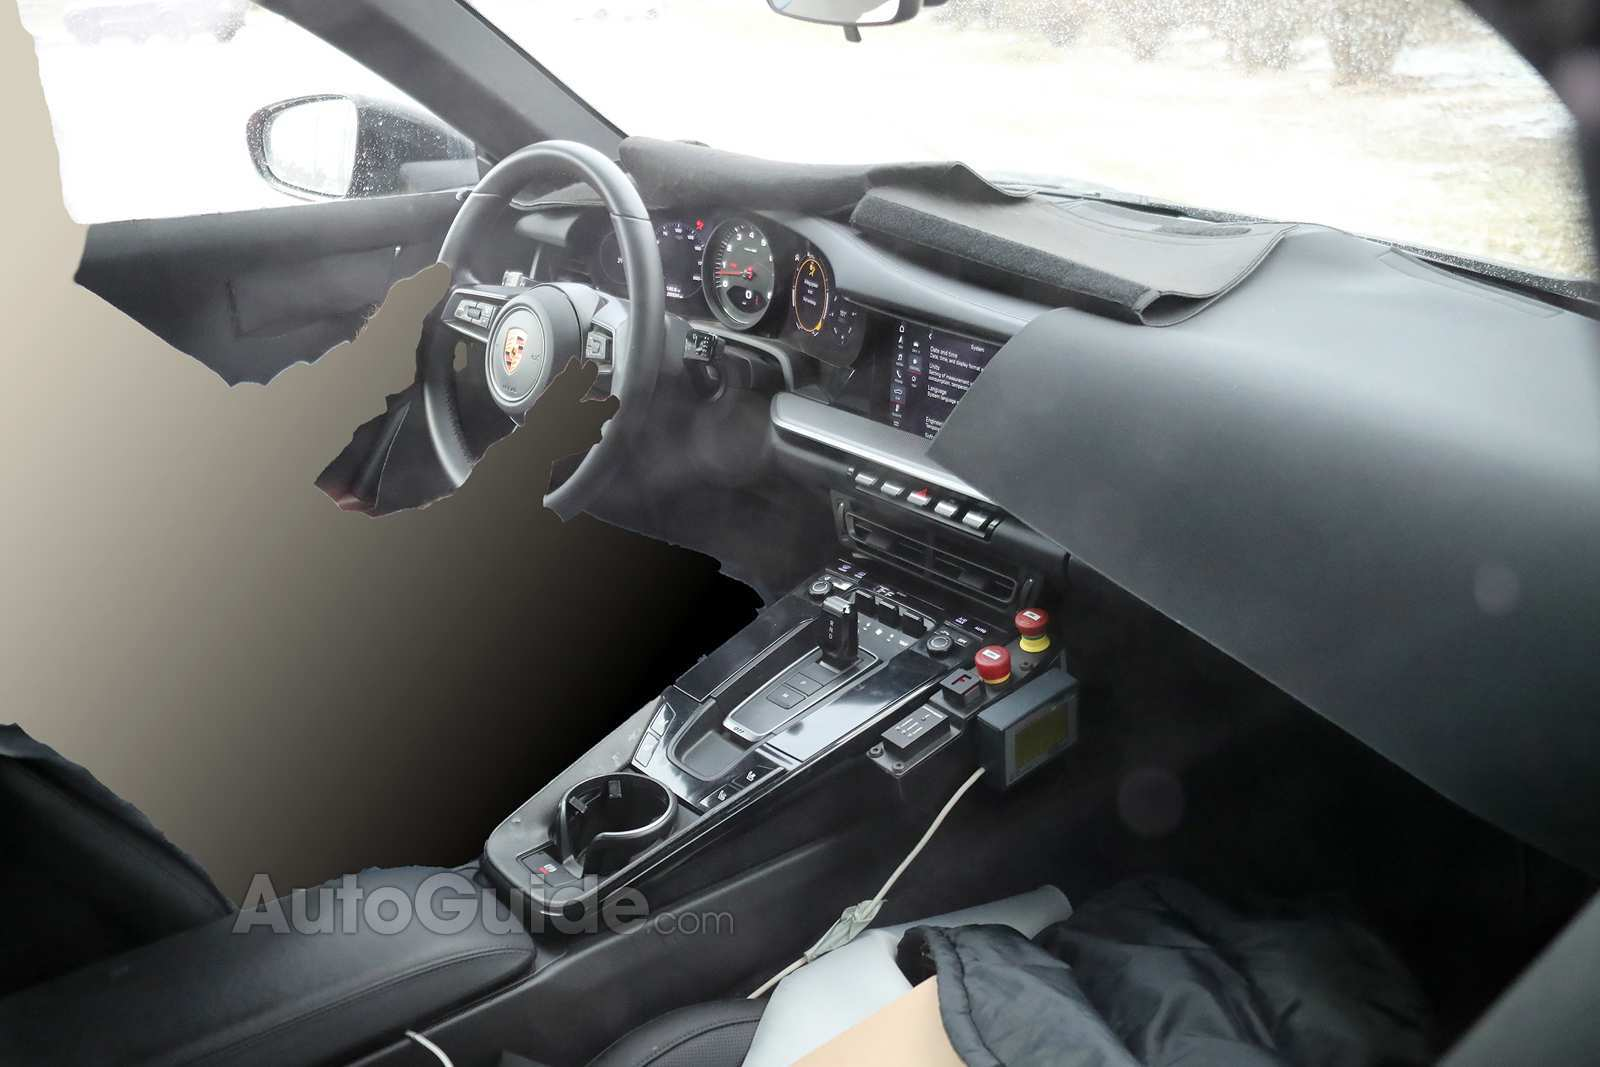 48 New 2019 Porsche Macan Interior Redesign and Concept with 2019 Porsche Macan Interior